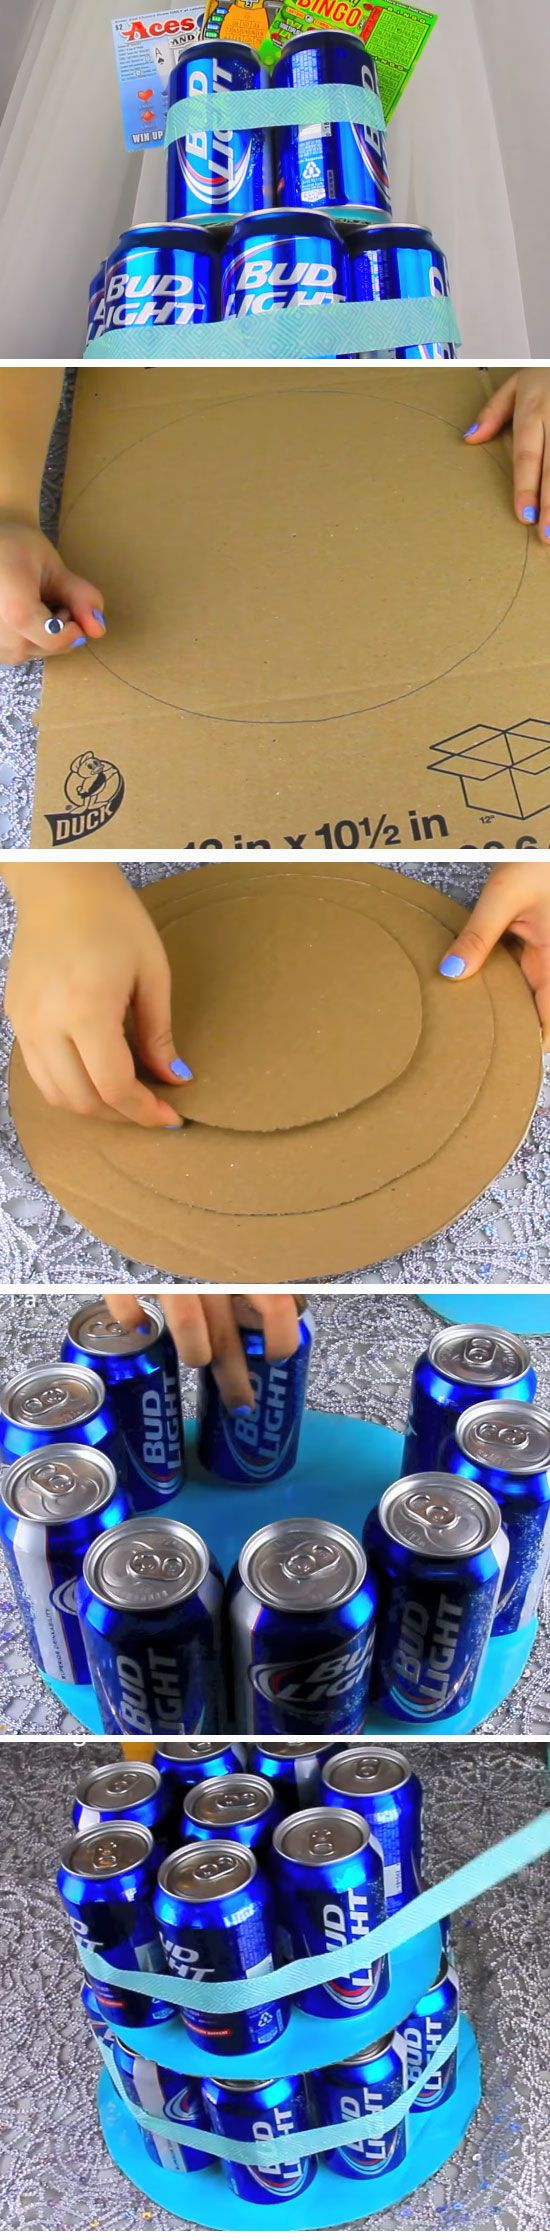 Beer Can Cake | DIY Fathers Day Gift Basket Ideas for Men | Easy Christmas Gifts for Men